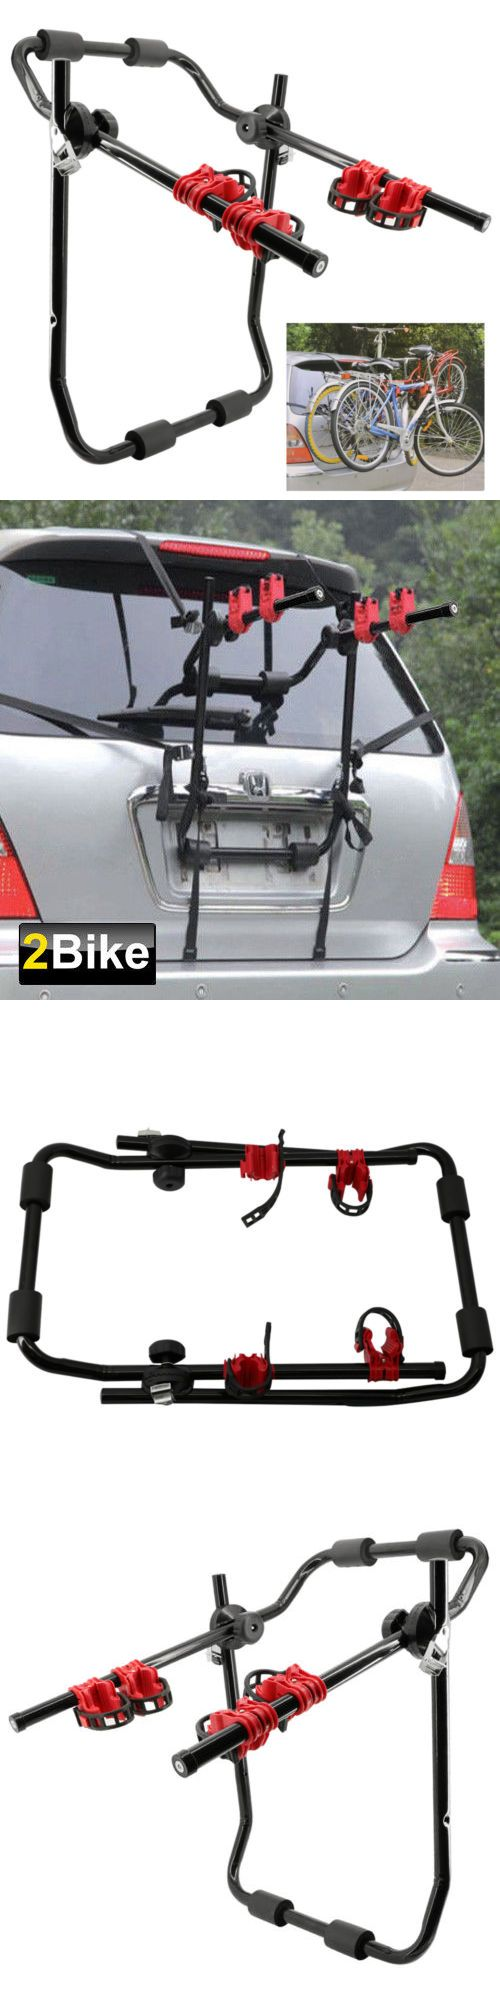 Car and Truck Racks 177849: 2016 Style 2-Bike Trunk Mount Rack Bicycle Rack Trunk Hitch Bike Carrier Holder -> BUY IT NOW ONLY: $34.99 on eBay!